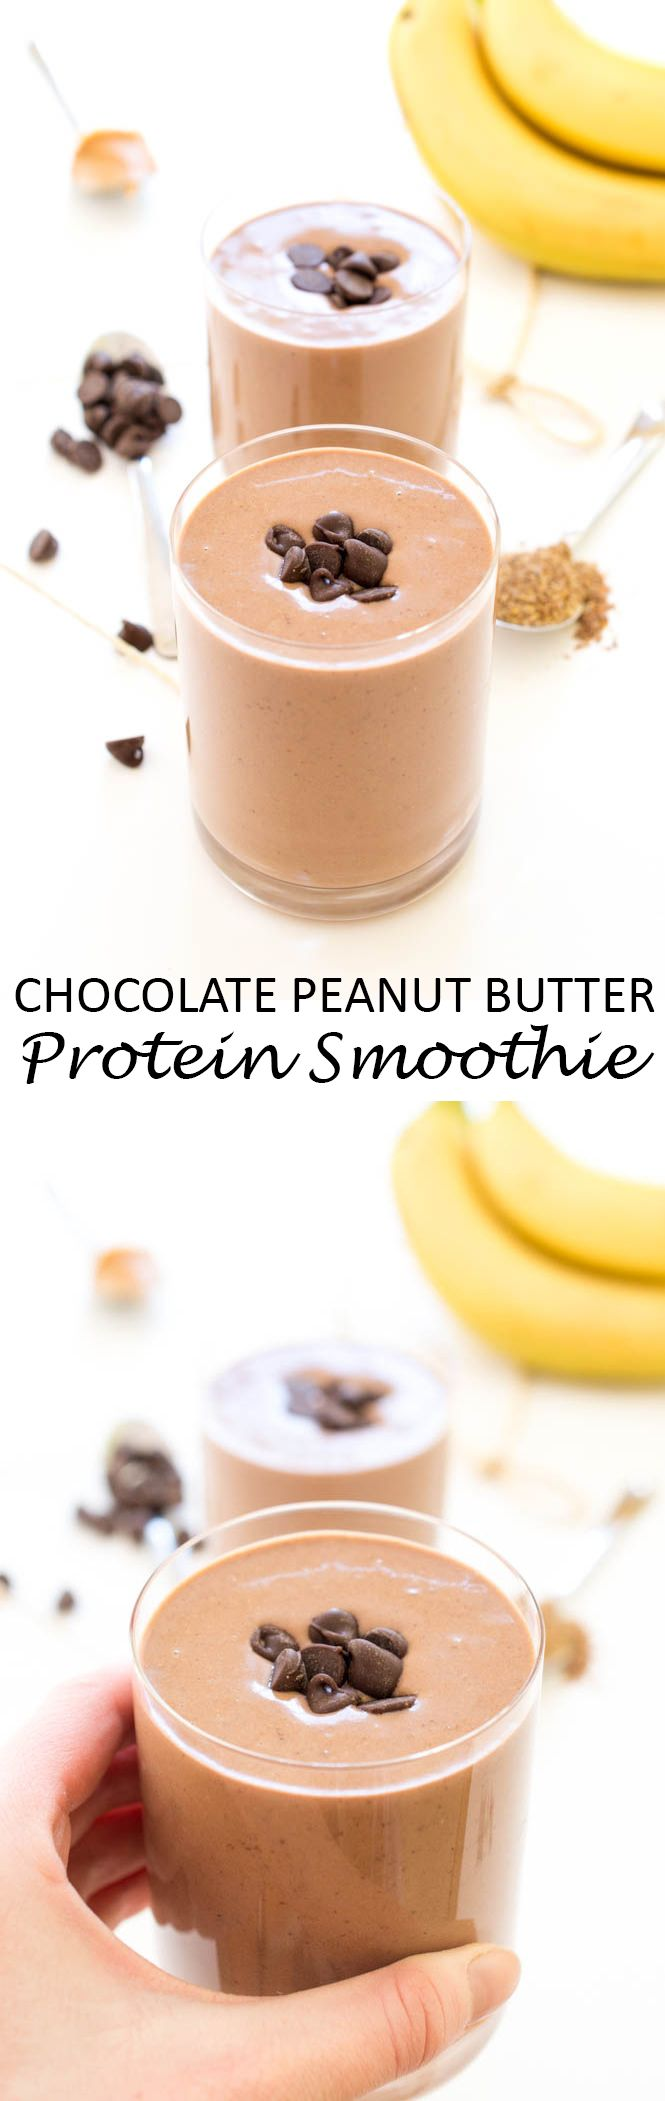 Super Easy 5 Minute Chocolate Peanut Butter Protein Smoothie. A healthy smoothie that tastes like dessert!